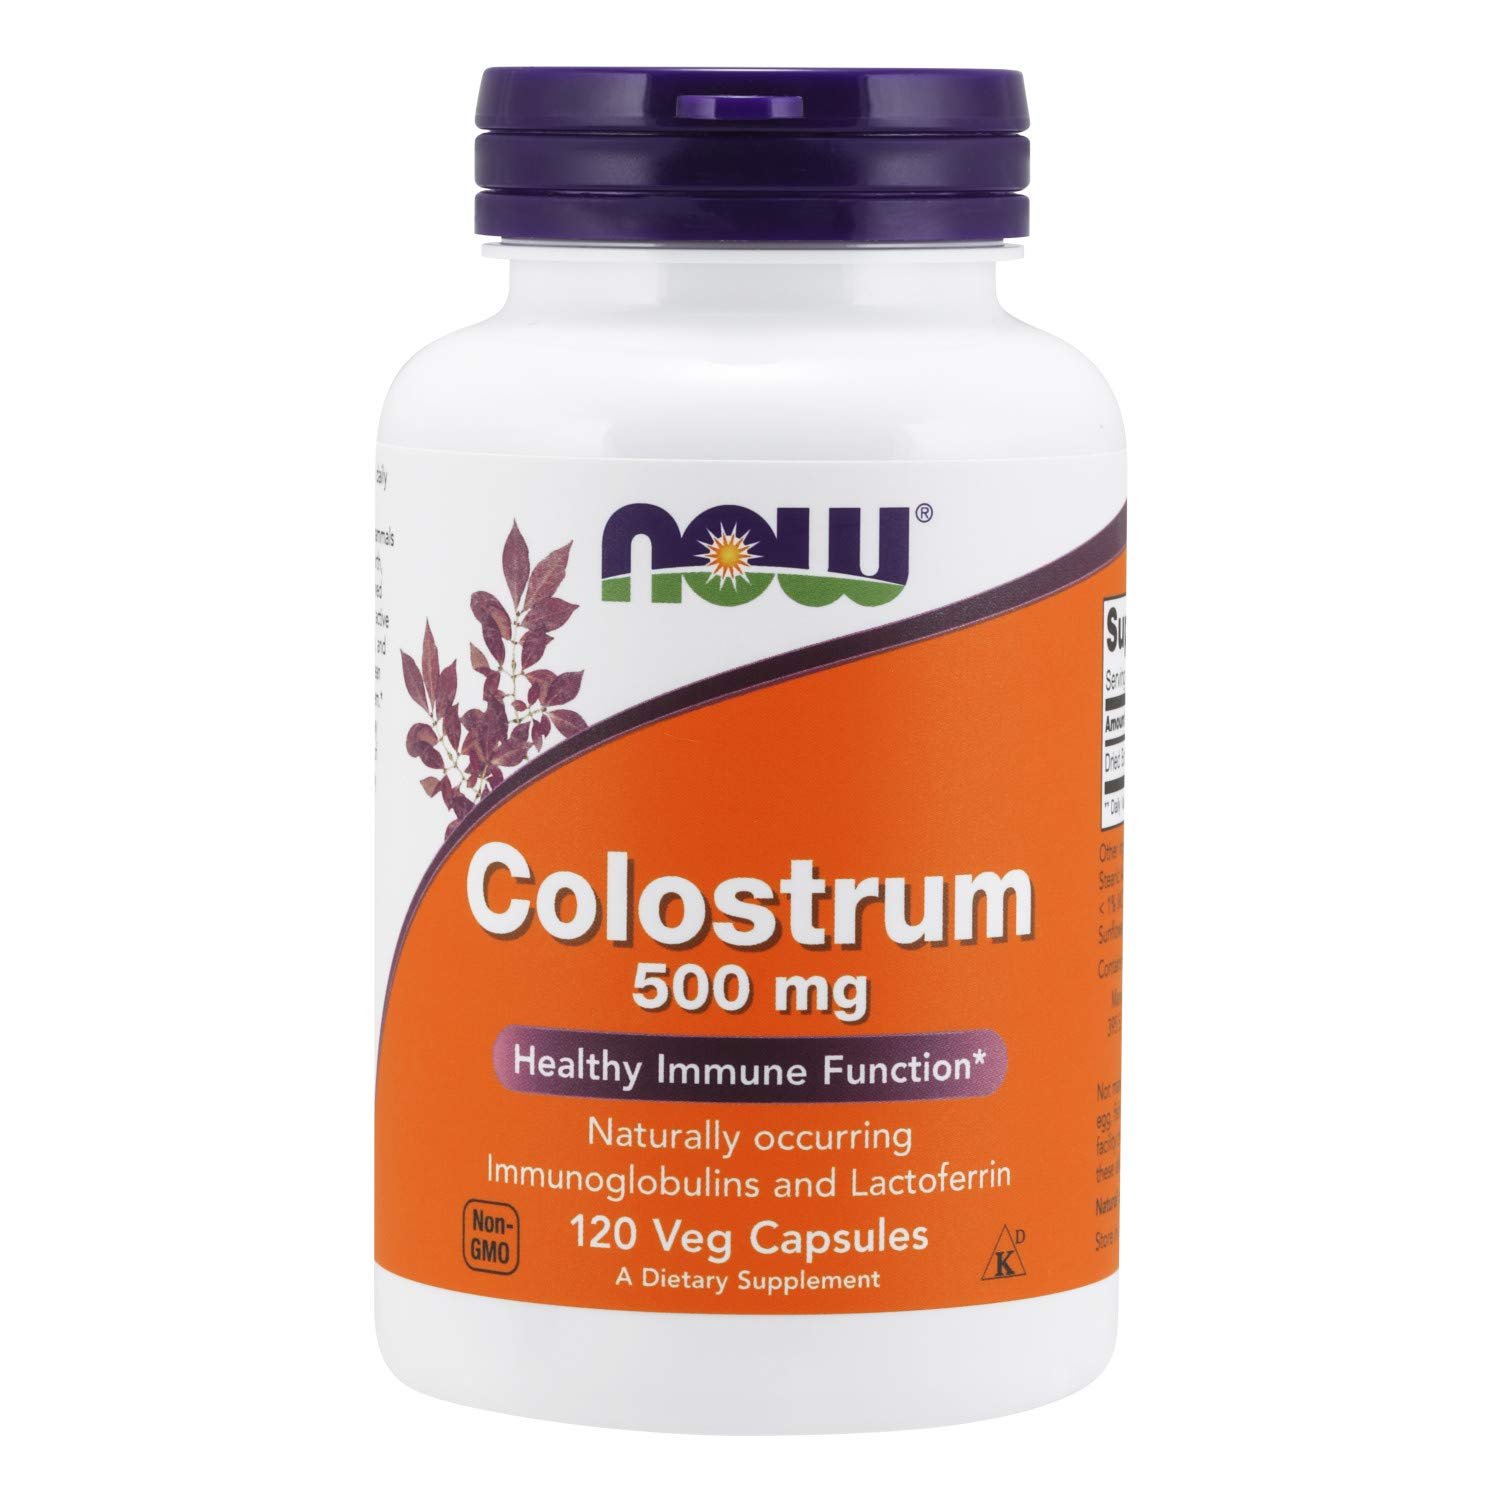 NOW Supplements, Colostrum 500 mg, Naturally occurring Immunoglobulins and Lactoferrin, 120 Veg Capsules